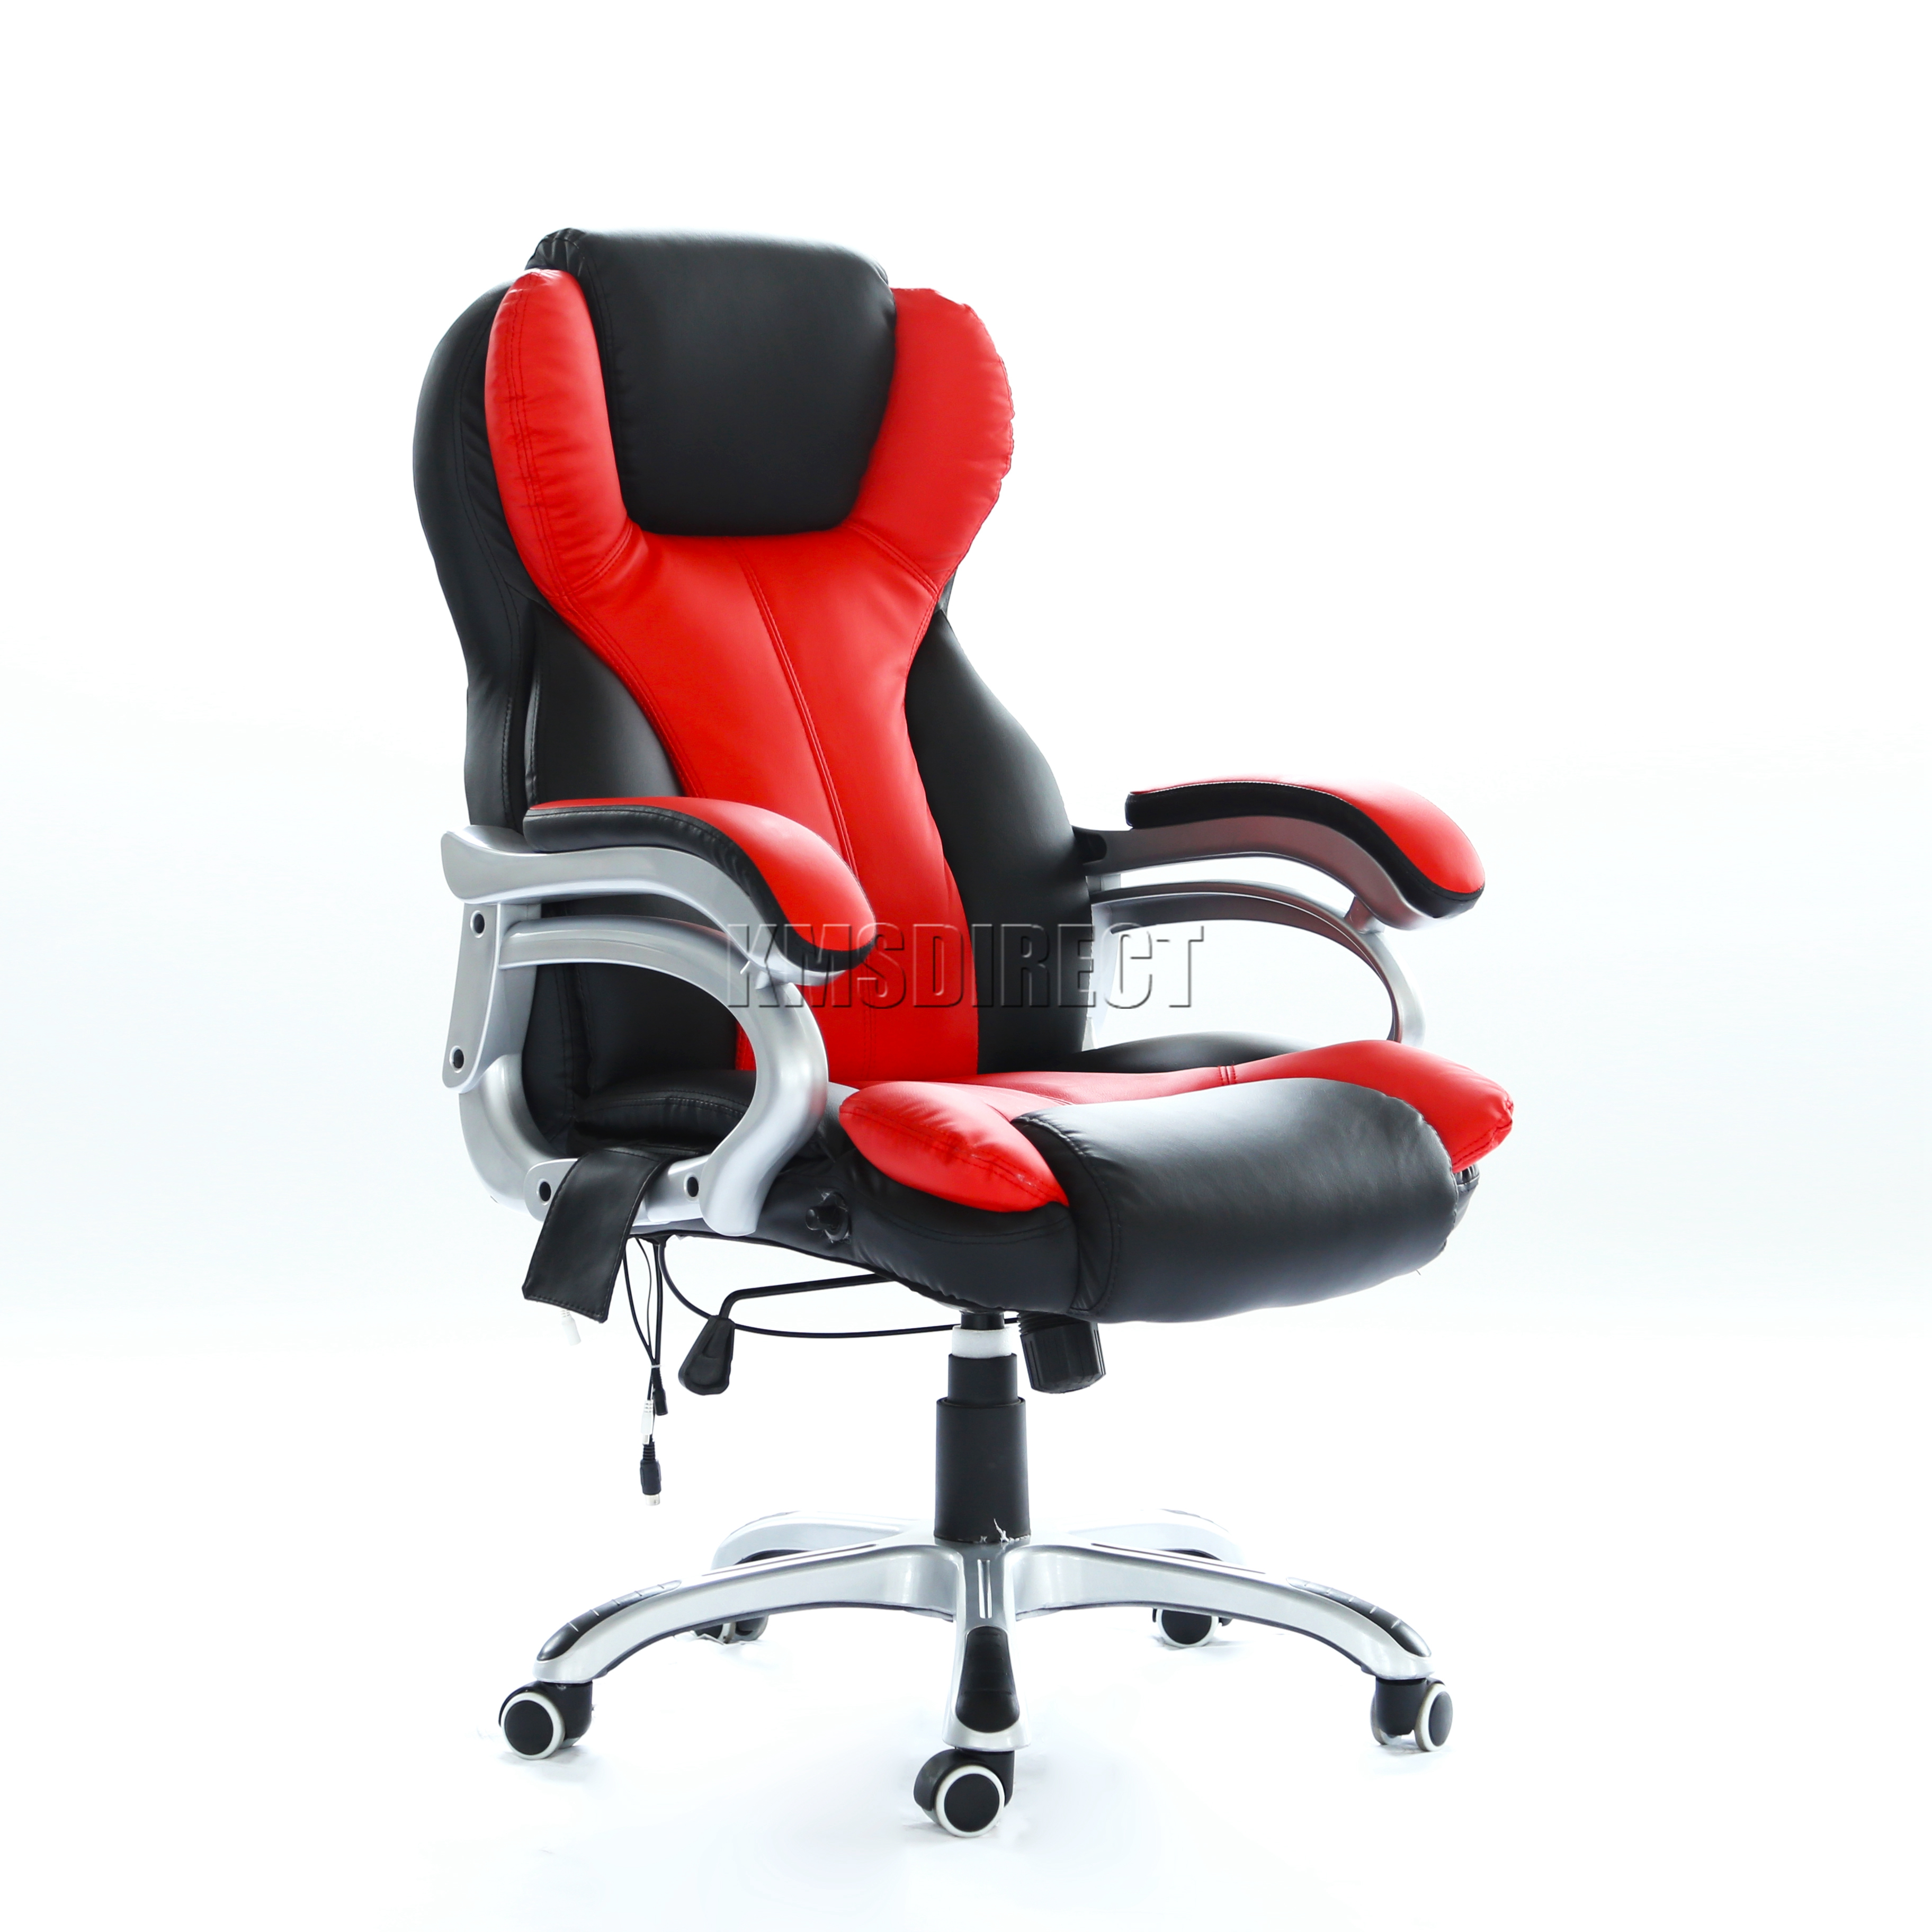 Sentinel FoxHunter Luxury 6 Point Massage Office Computer Chair Reclining MC8074 Red New